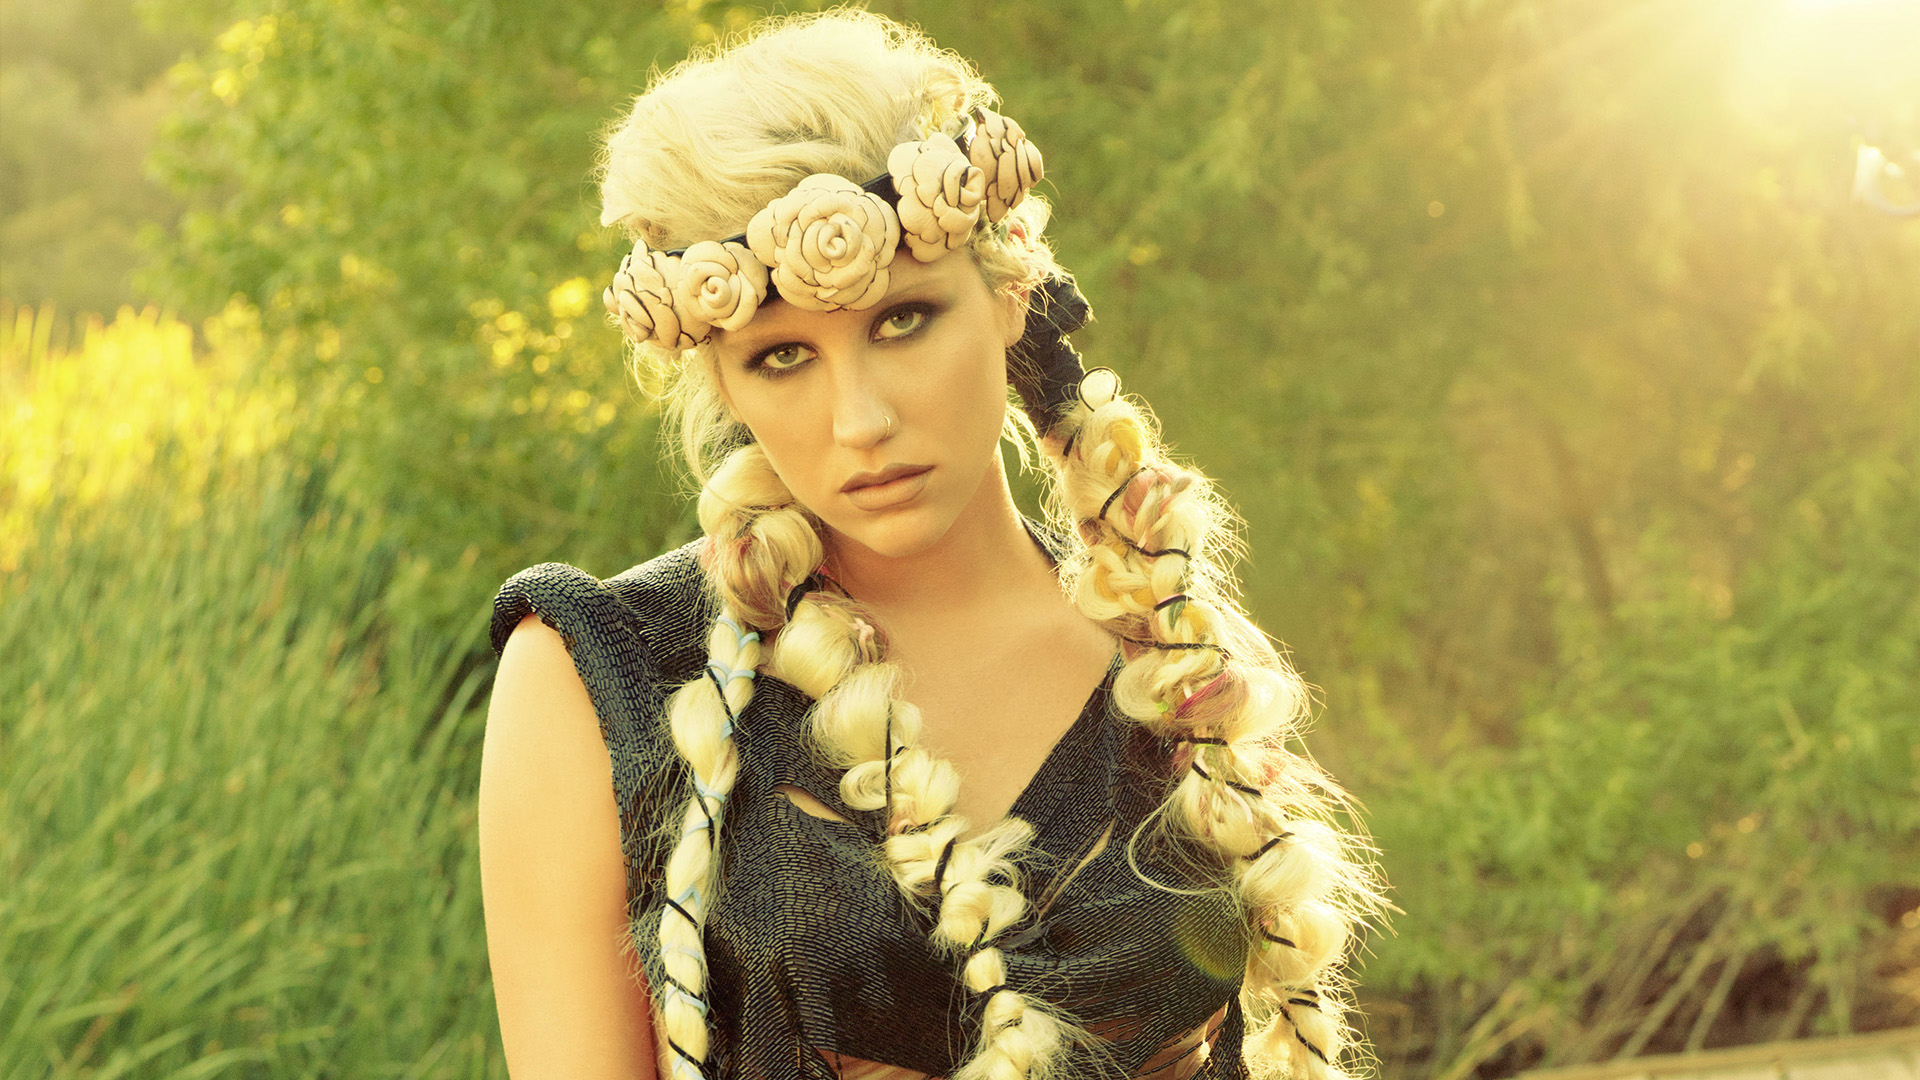 KESHA pop hip hop electronic dance women blonde blondes g wallpaper 1920x1080